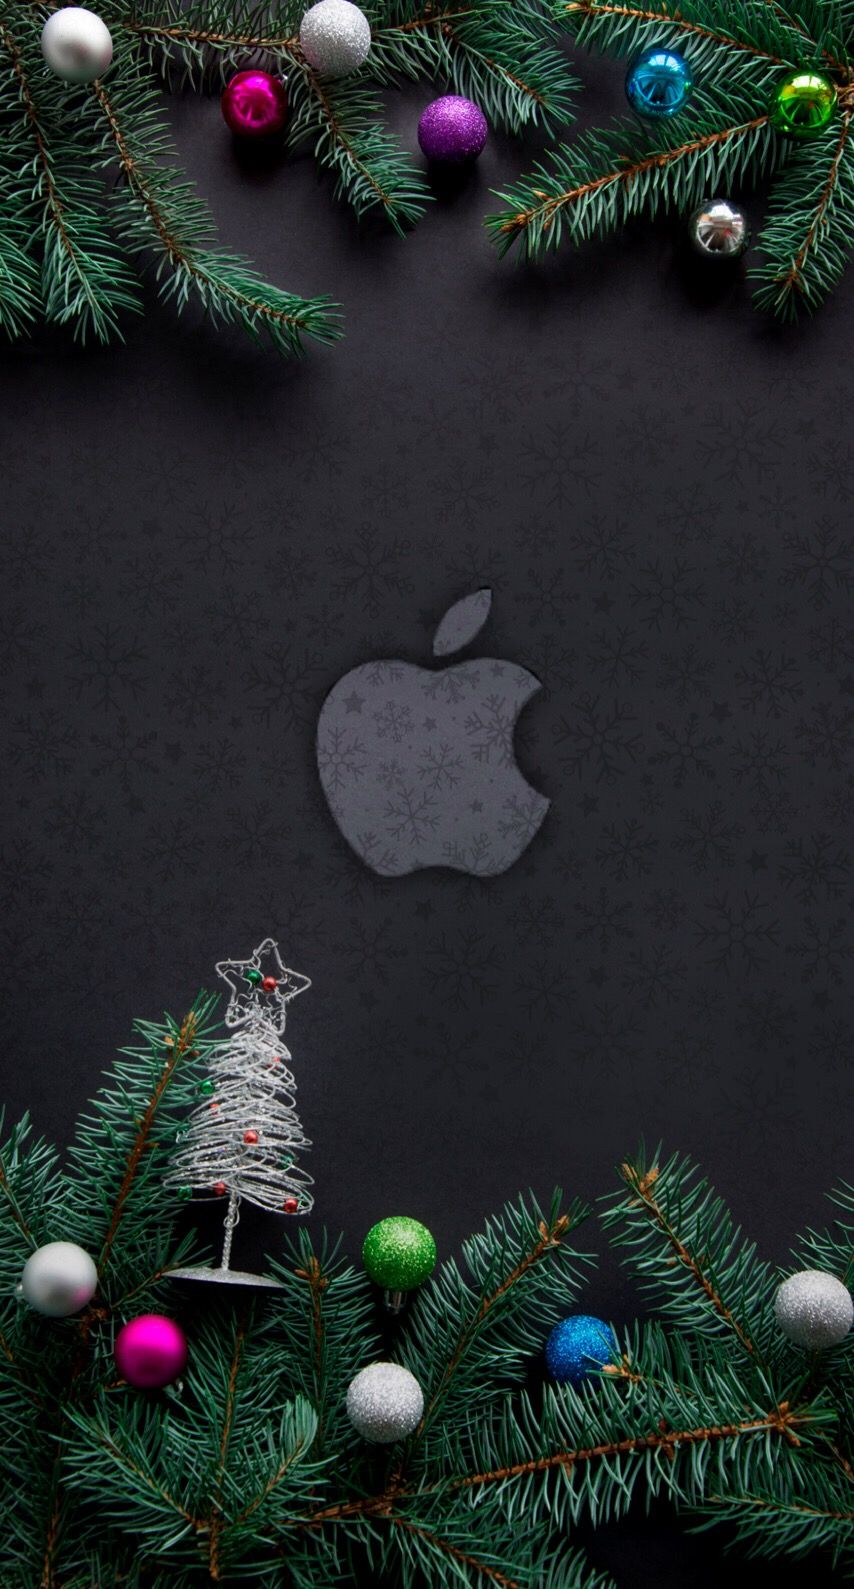 Pin By Tyler Hale On Apple Iphone Christmas Phone Wallpaper Holiday Wallpaper Christmas Wallpaper